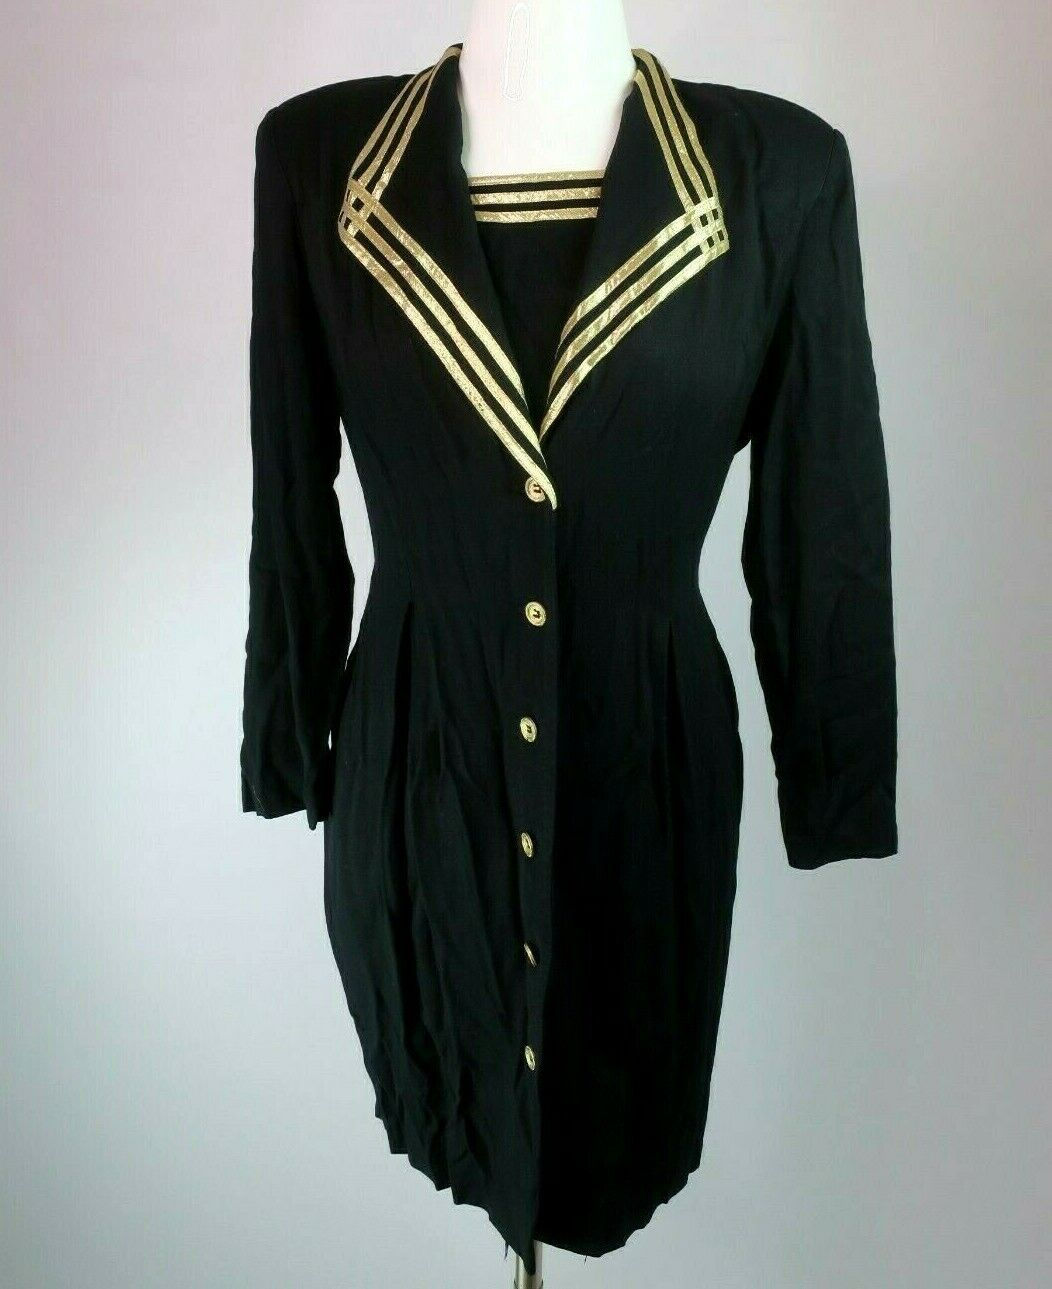 SL Fashions VTG 80s Metallic Gold Tuxedo Party Prom Evening Dress Sz 14 Military